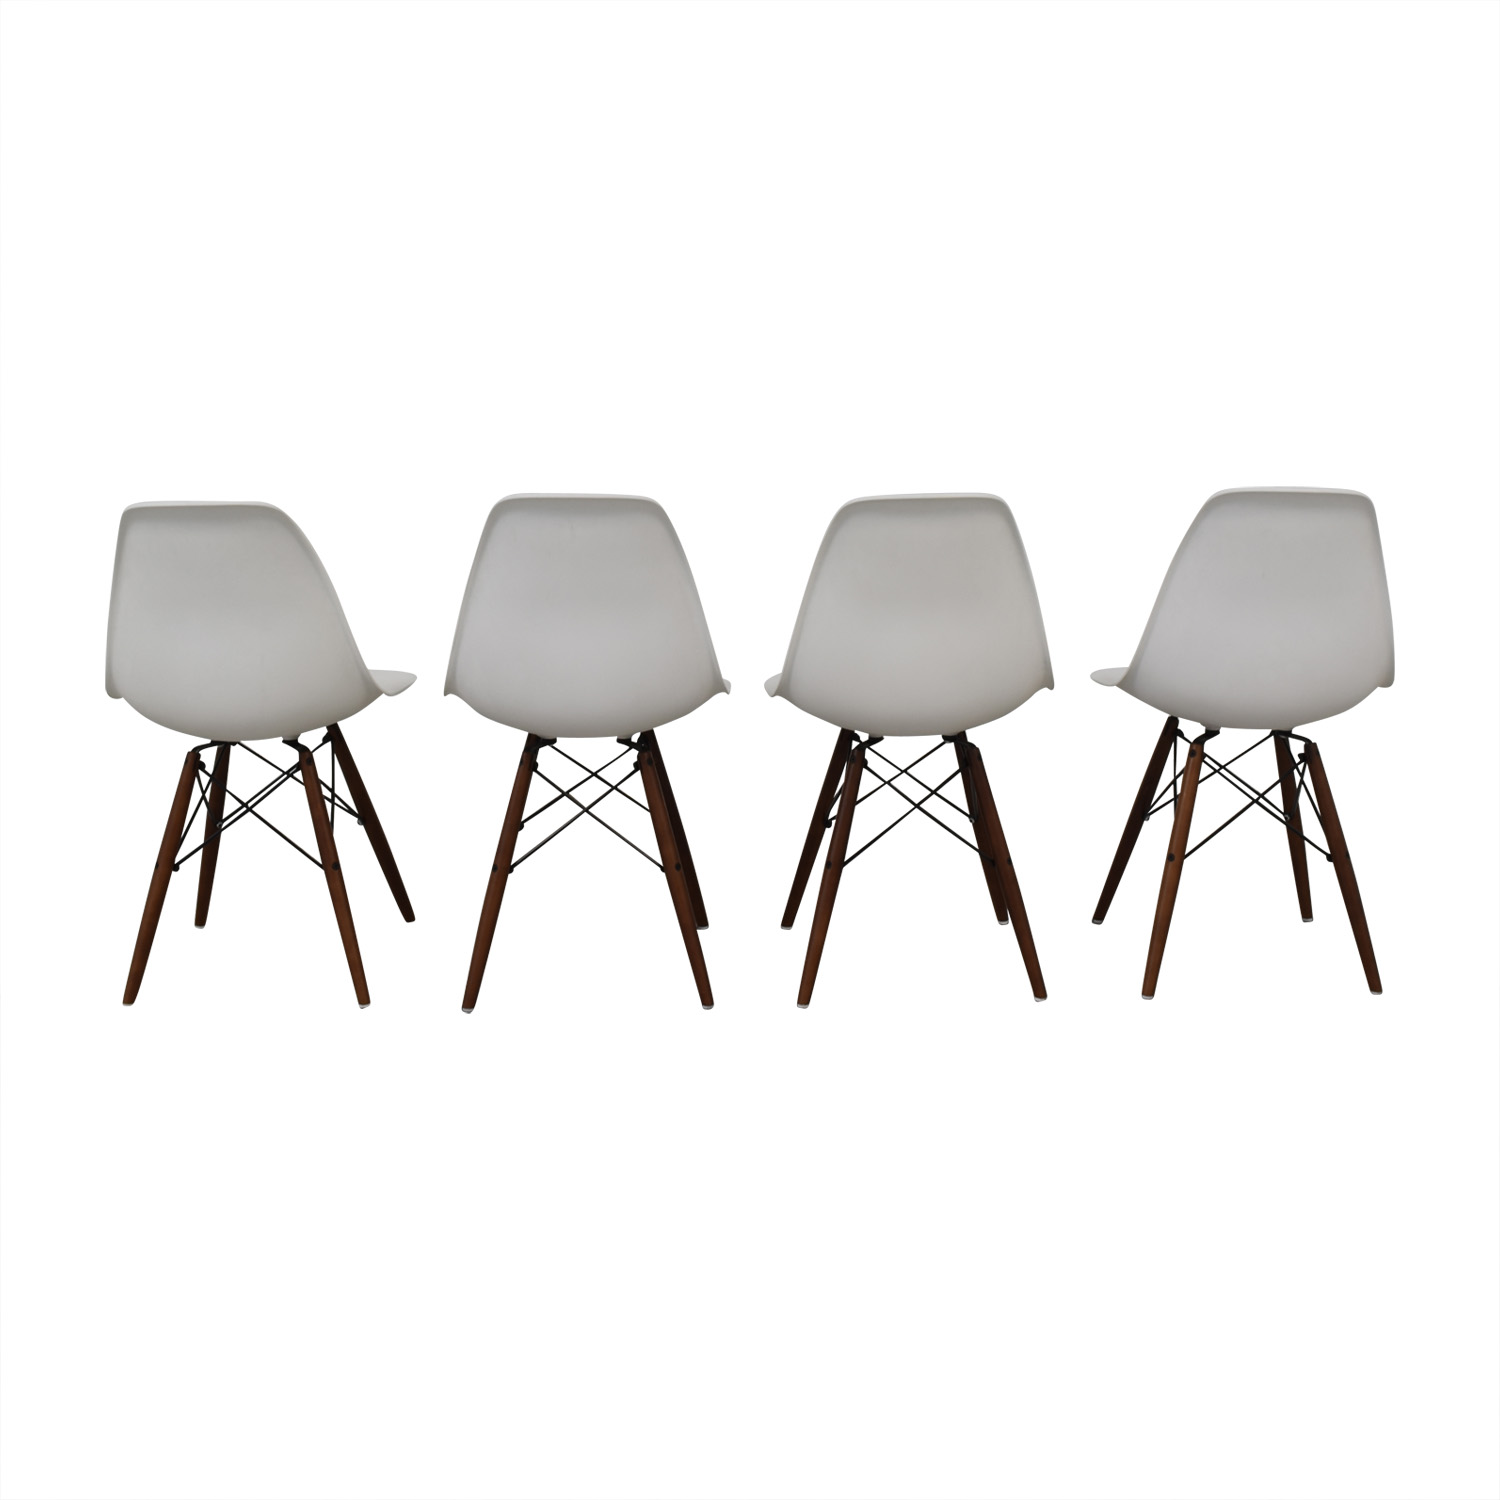 shop Poly & Bark Poly & Bark Chairs online